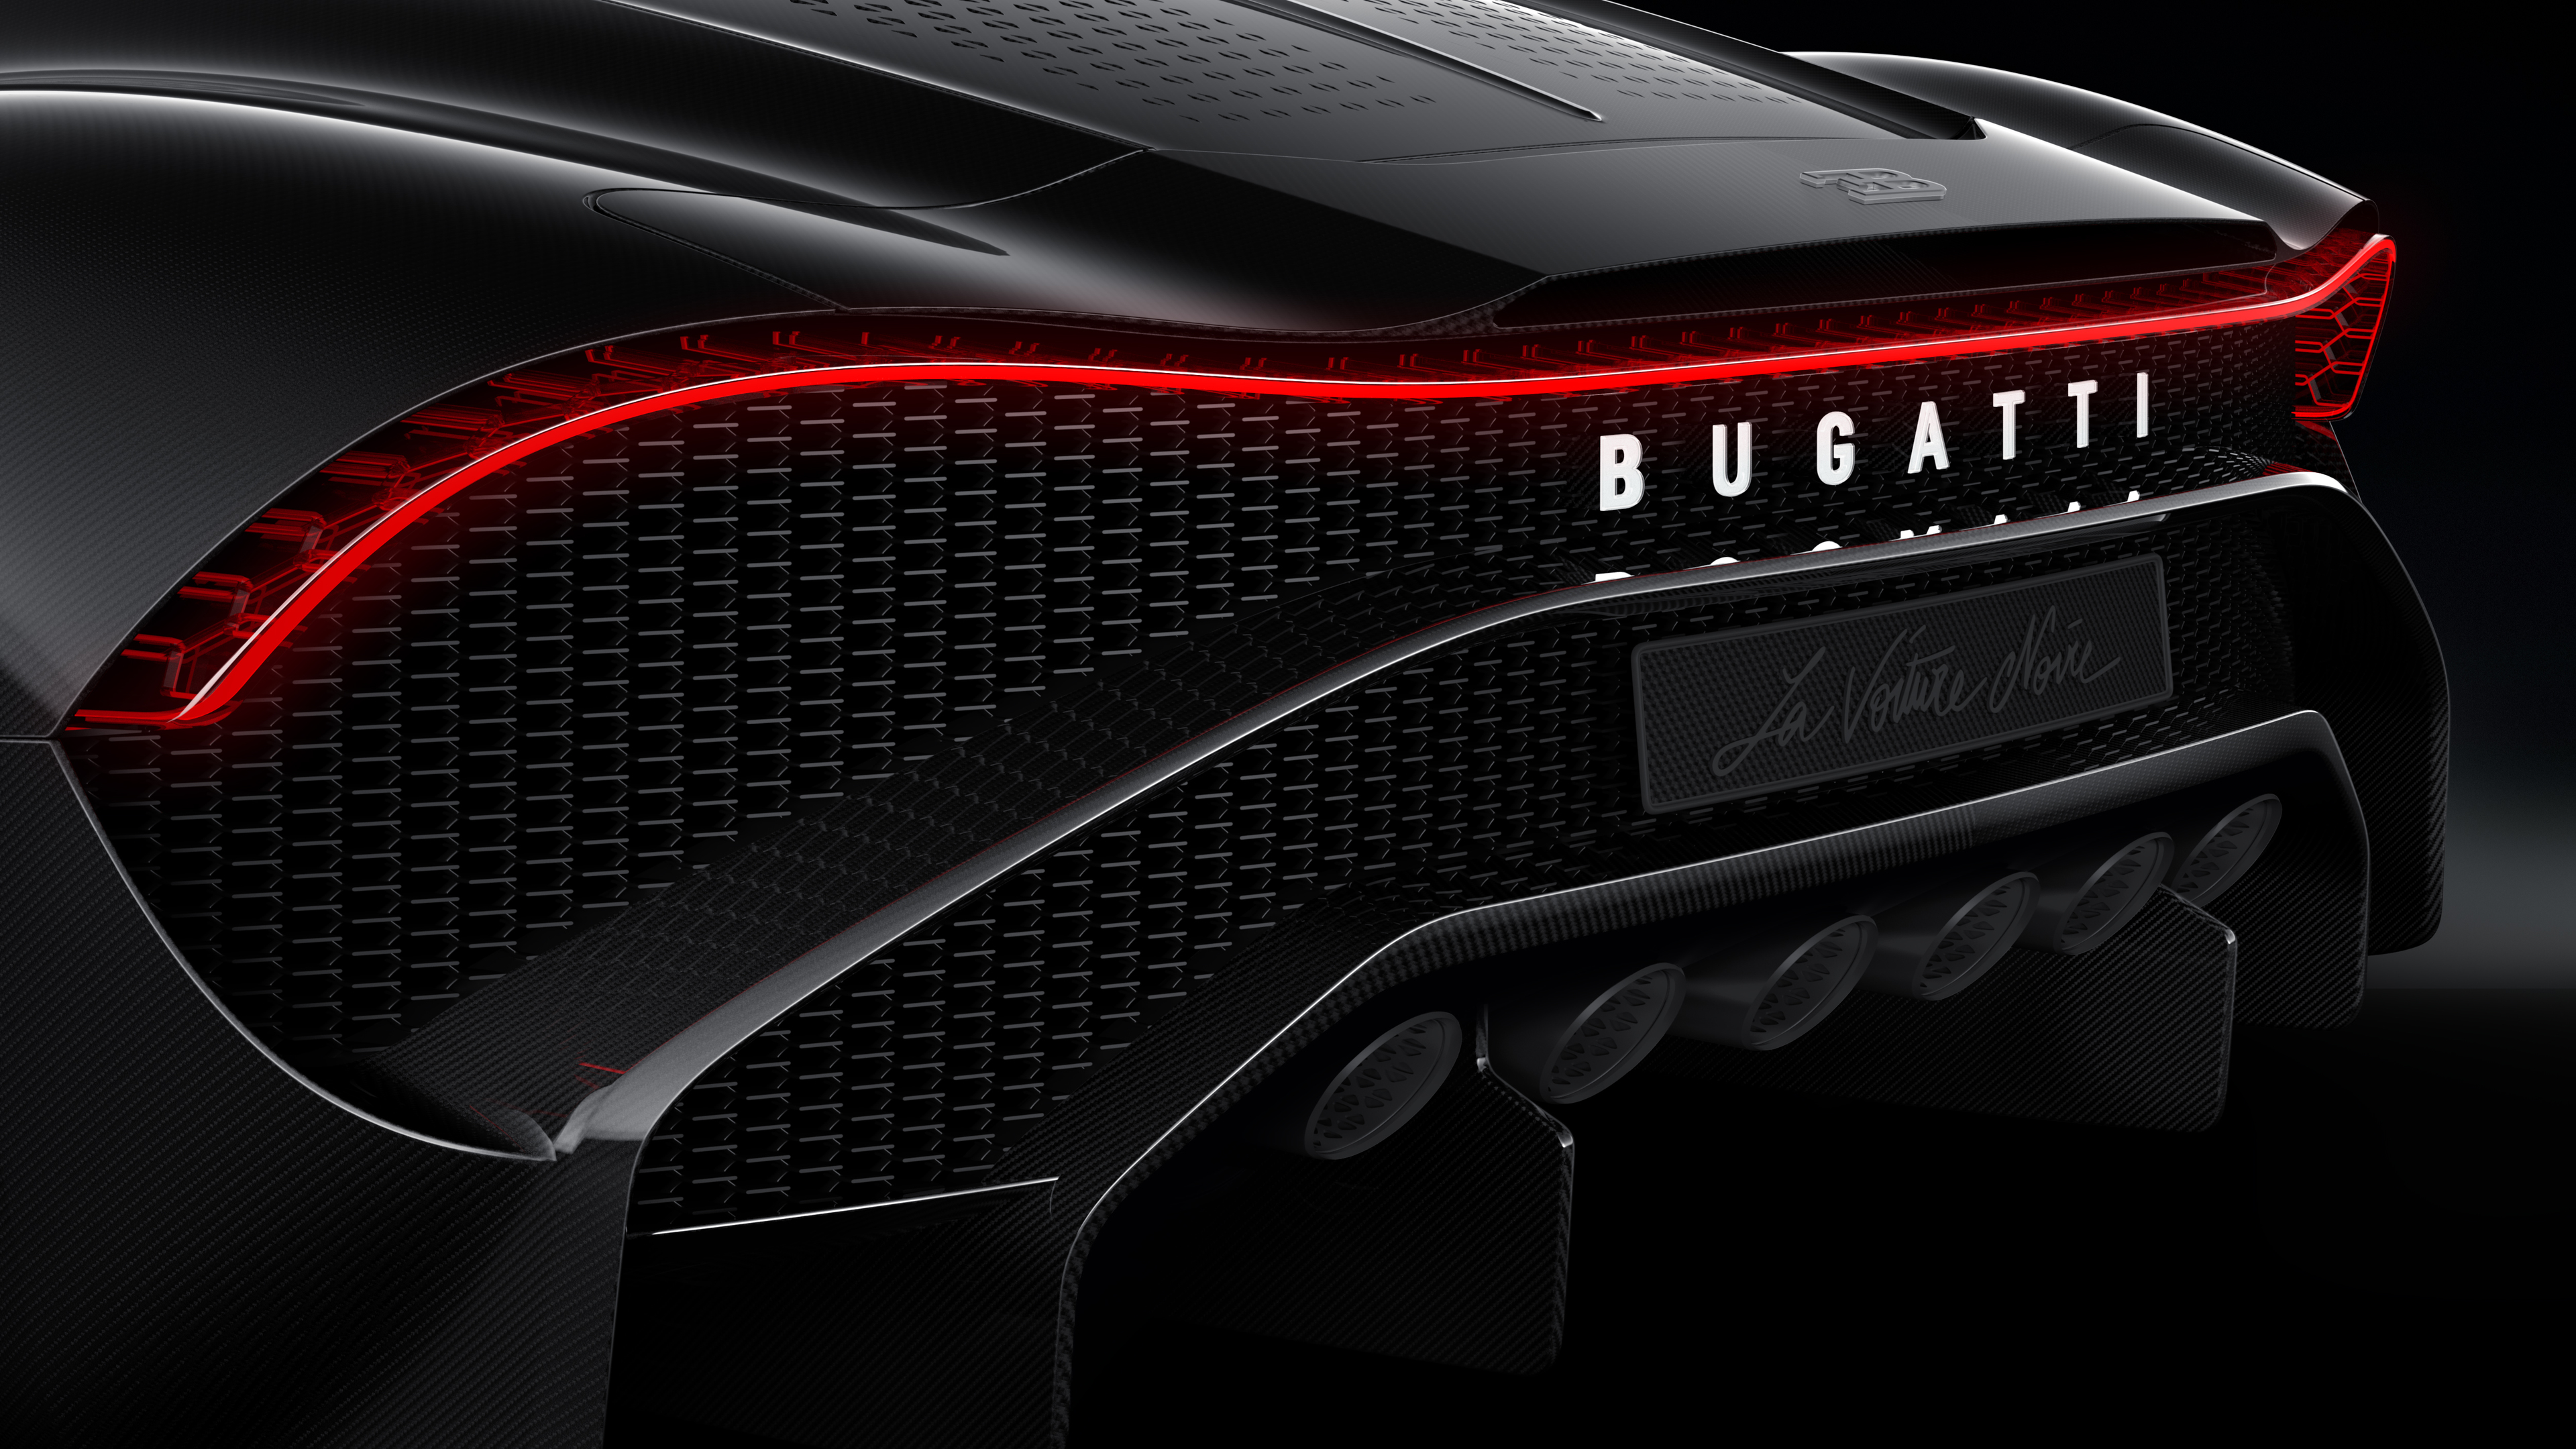 Wallpaper 4k Bugatti La Voiture Noire Rear Lights 4k 2019